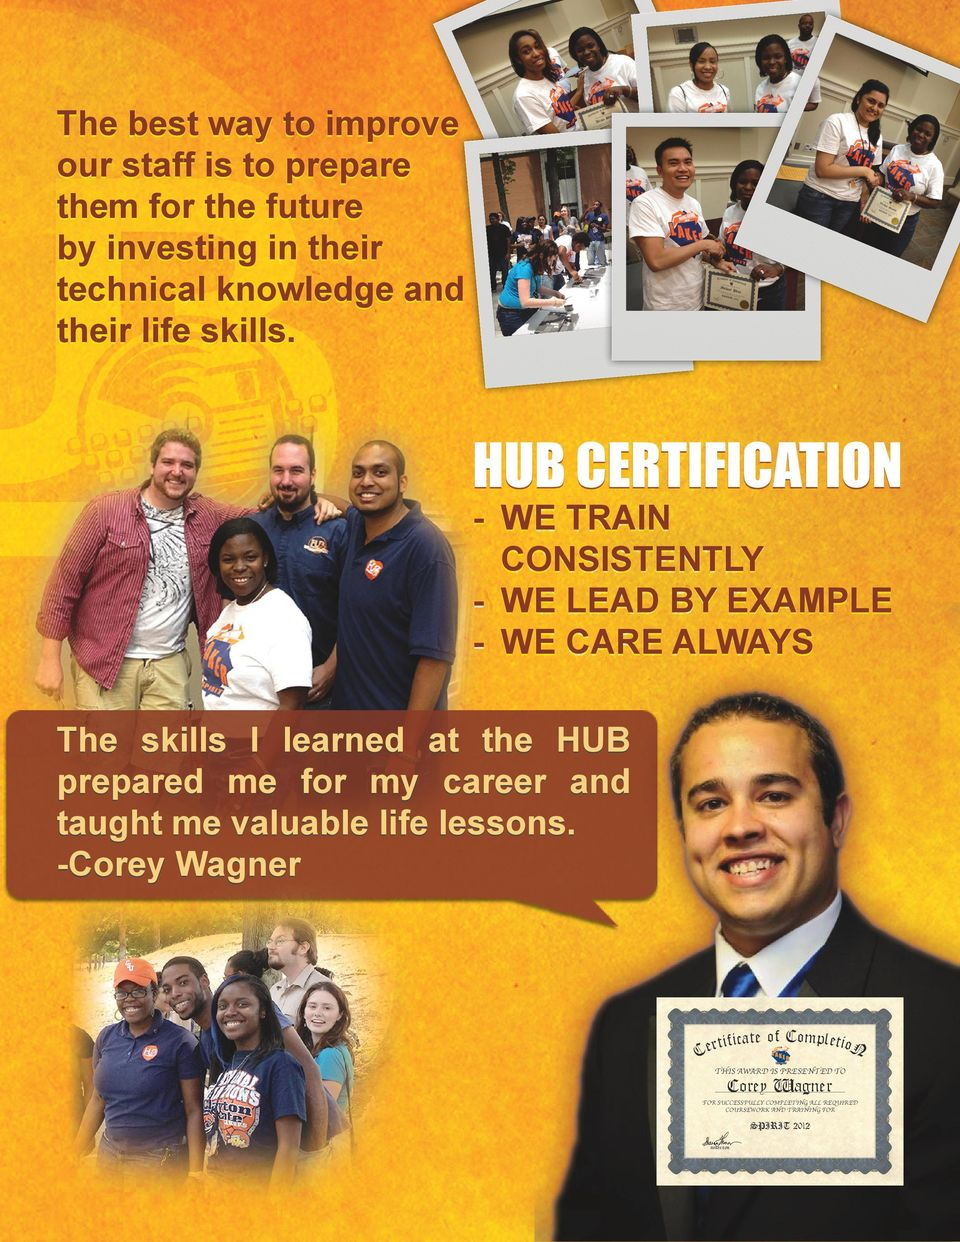 HUB CERTIFICATION - WE TRAIN CONSISTENTLY - WE LEAD BY EXAMPLE - WE CARE ALWAYS The skills I learned at the HUB